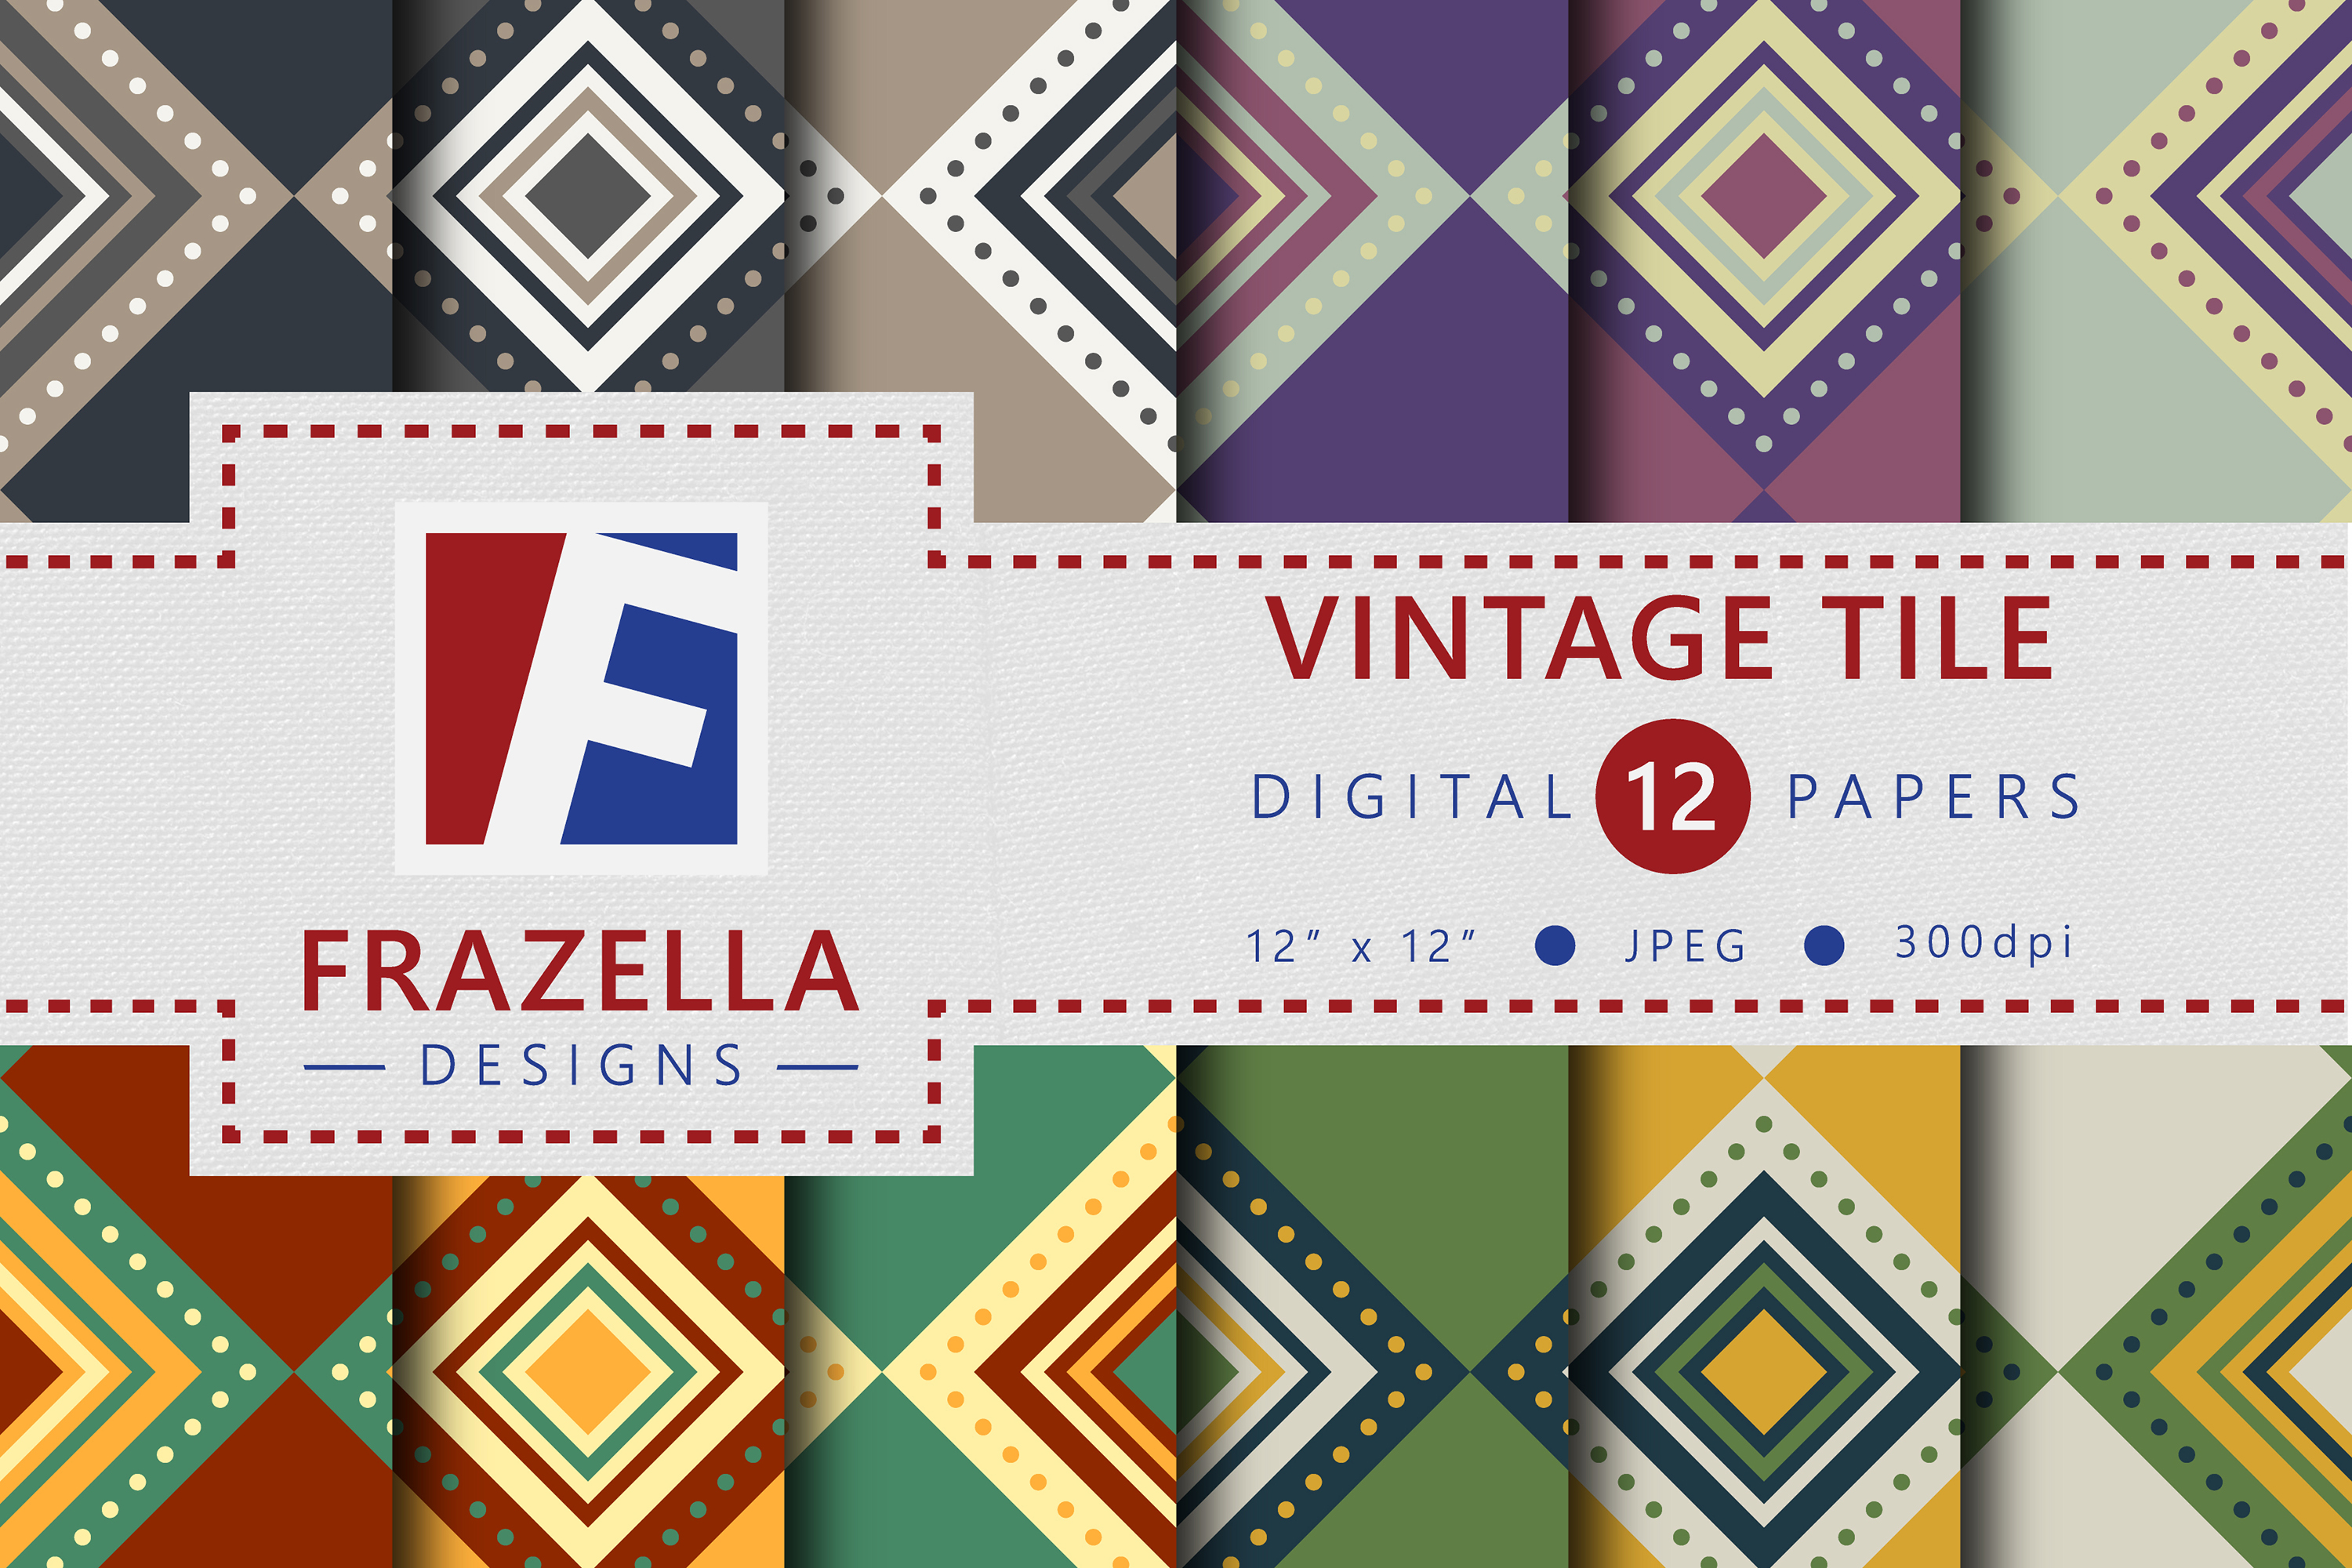 The ULTIMATE Digital Paper Collection Retro Edition Vol. 2. example image 11